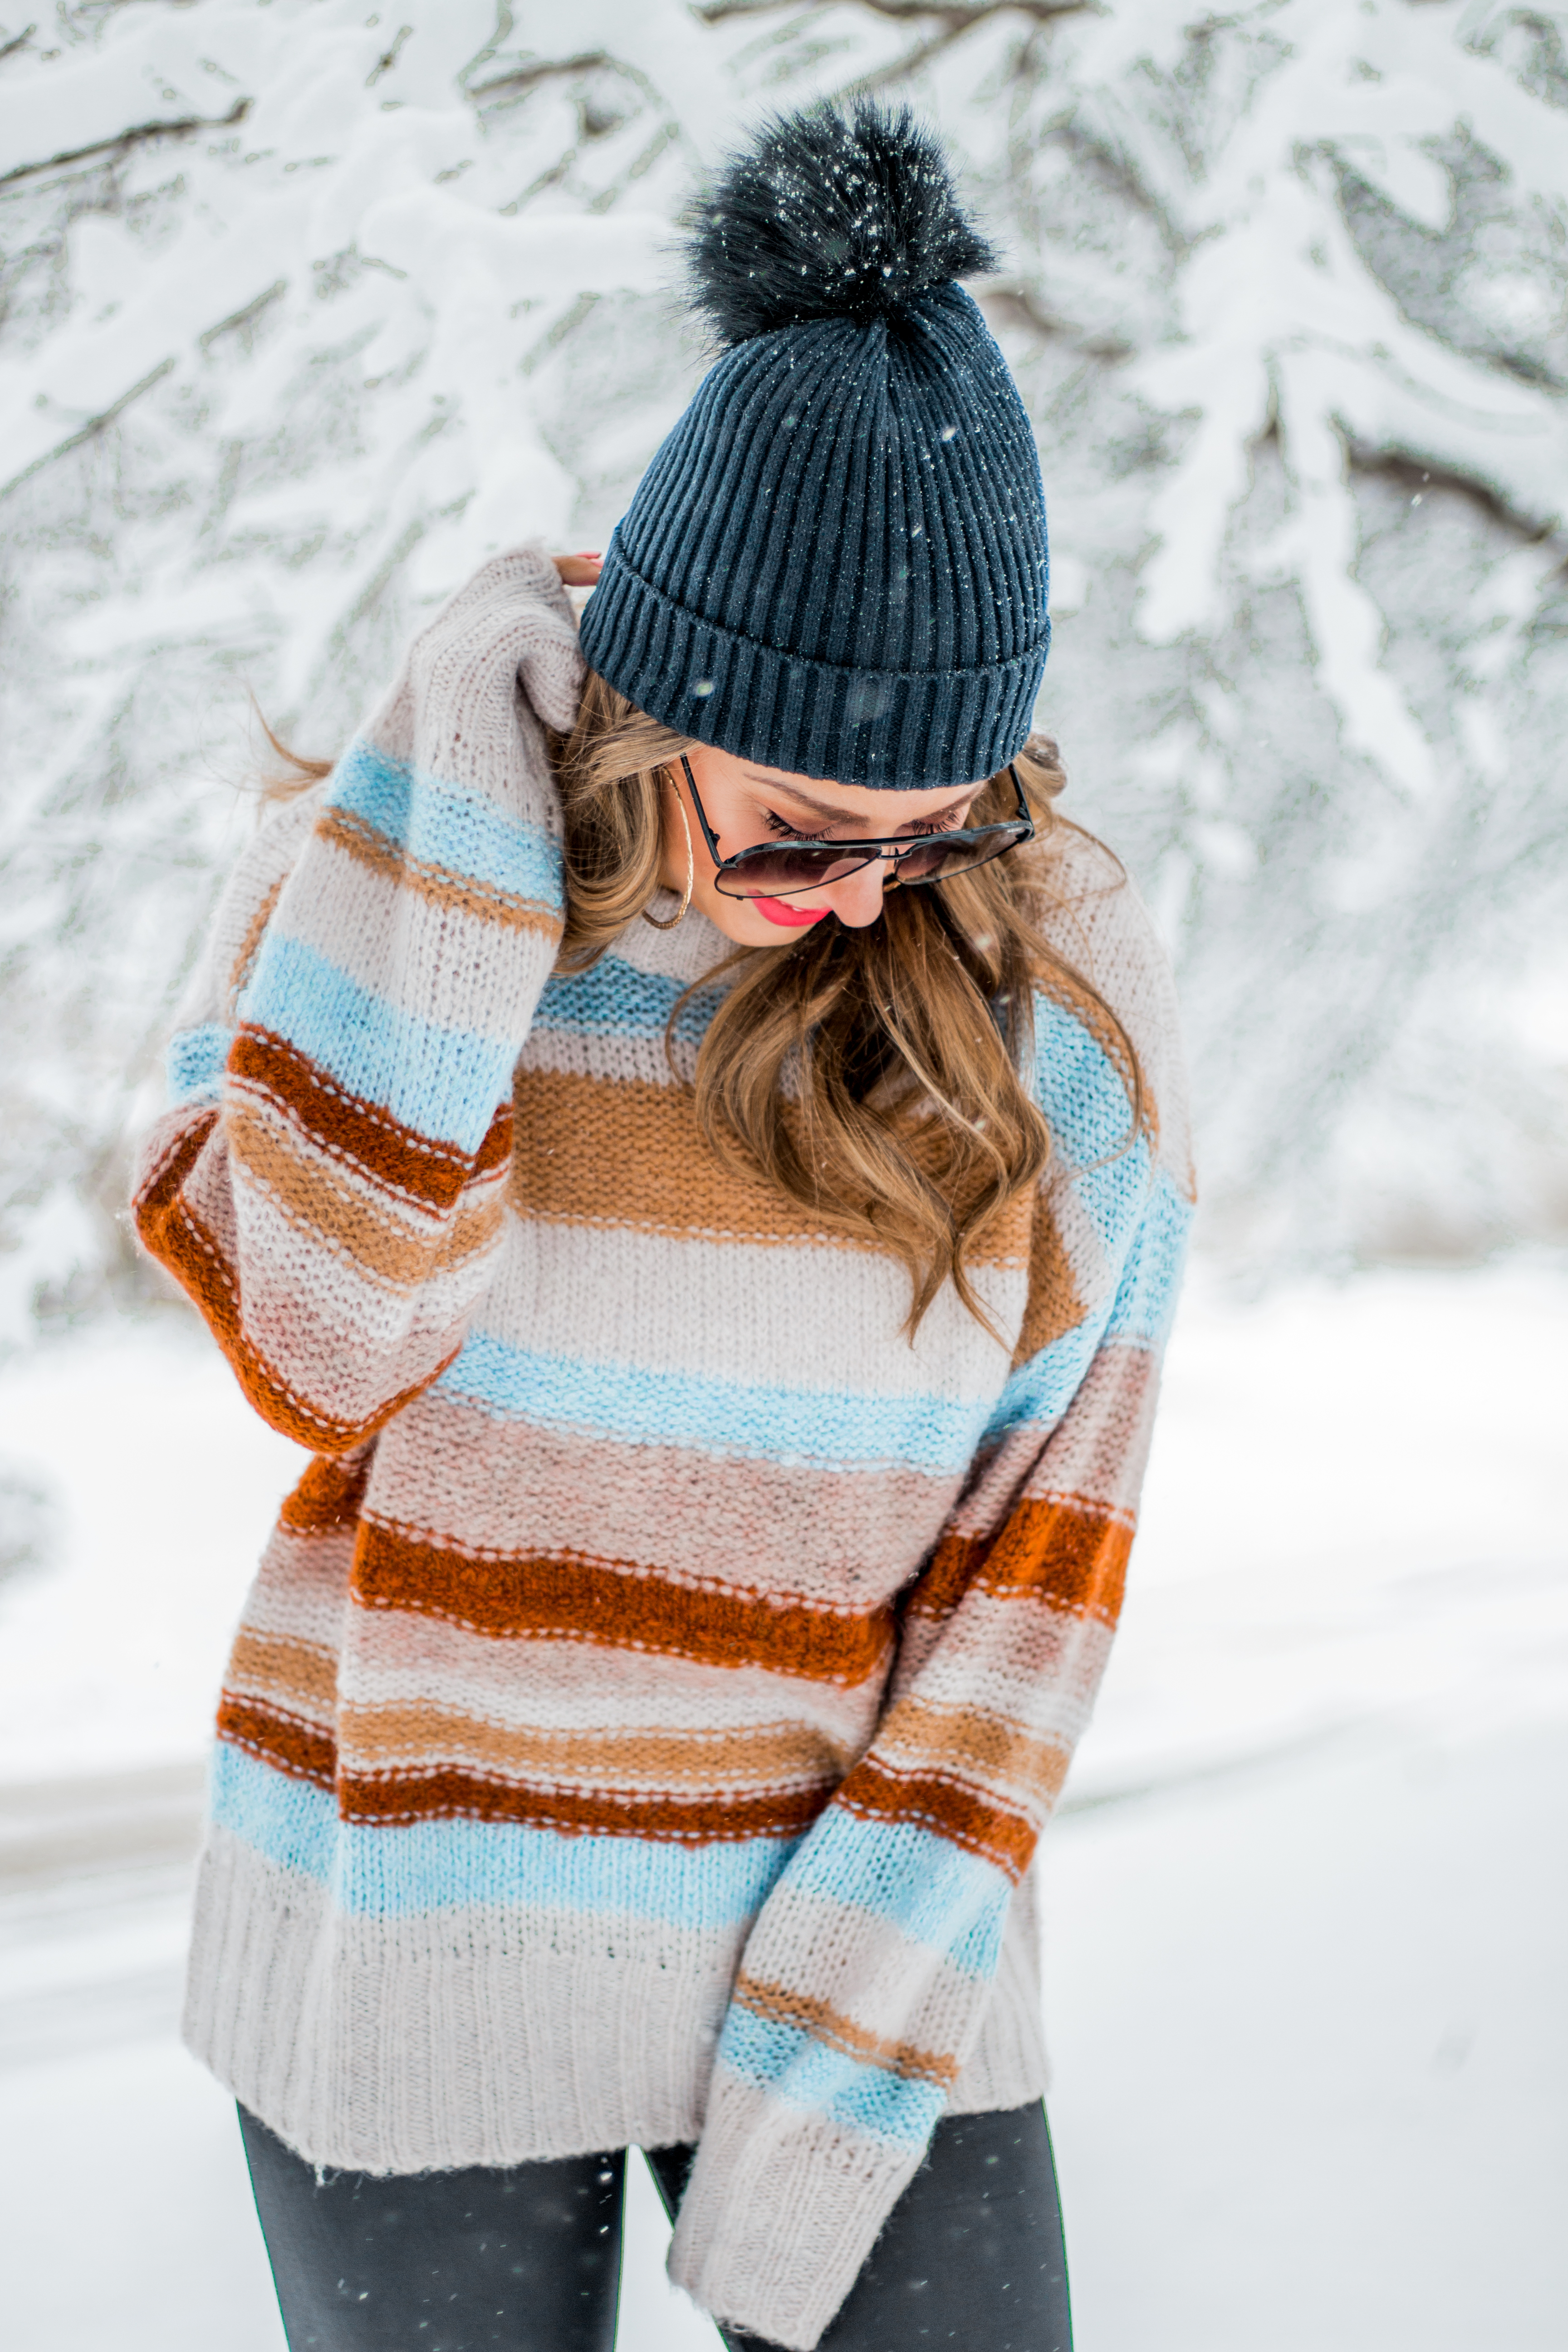 Women's Fashion - American Eagle Sweater - Hunter Boots - Beanie - Snow Day - OOTD - Fashion Blogger - Winter Fashion - 1